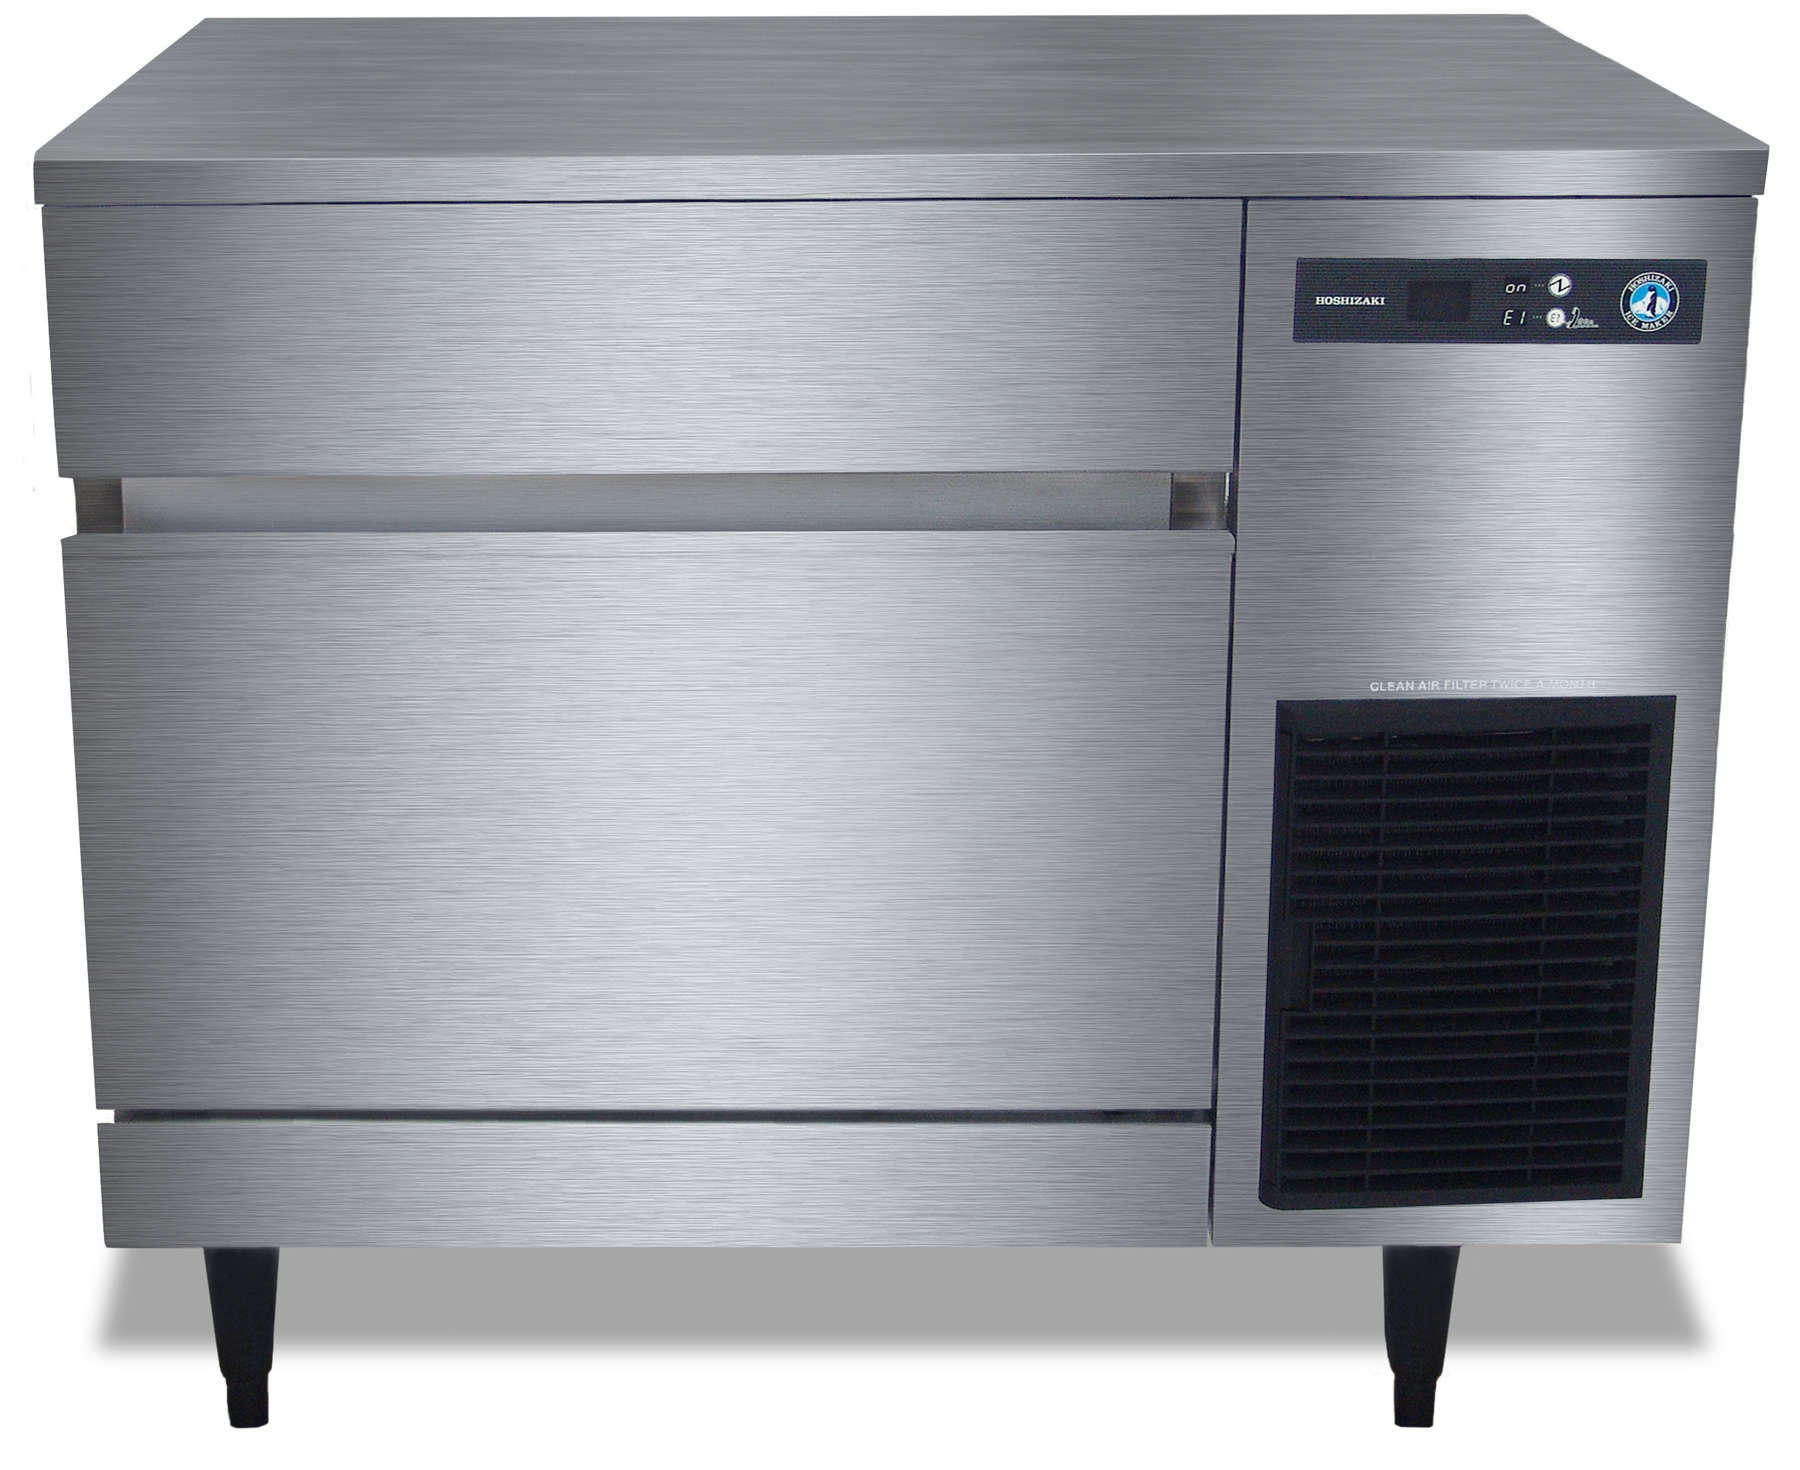 under center drink major undercounter img makers an storage cabinet refrigeration enhance options maker ice kitchenaid beverage counter choose to image your from appliances